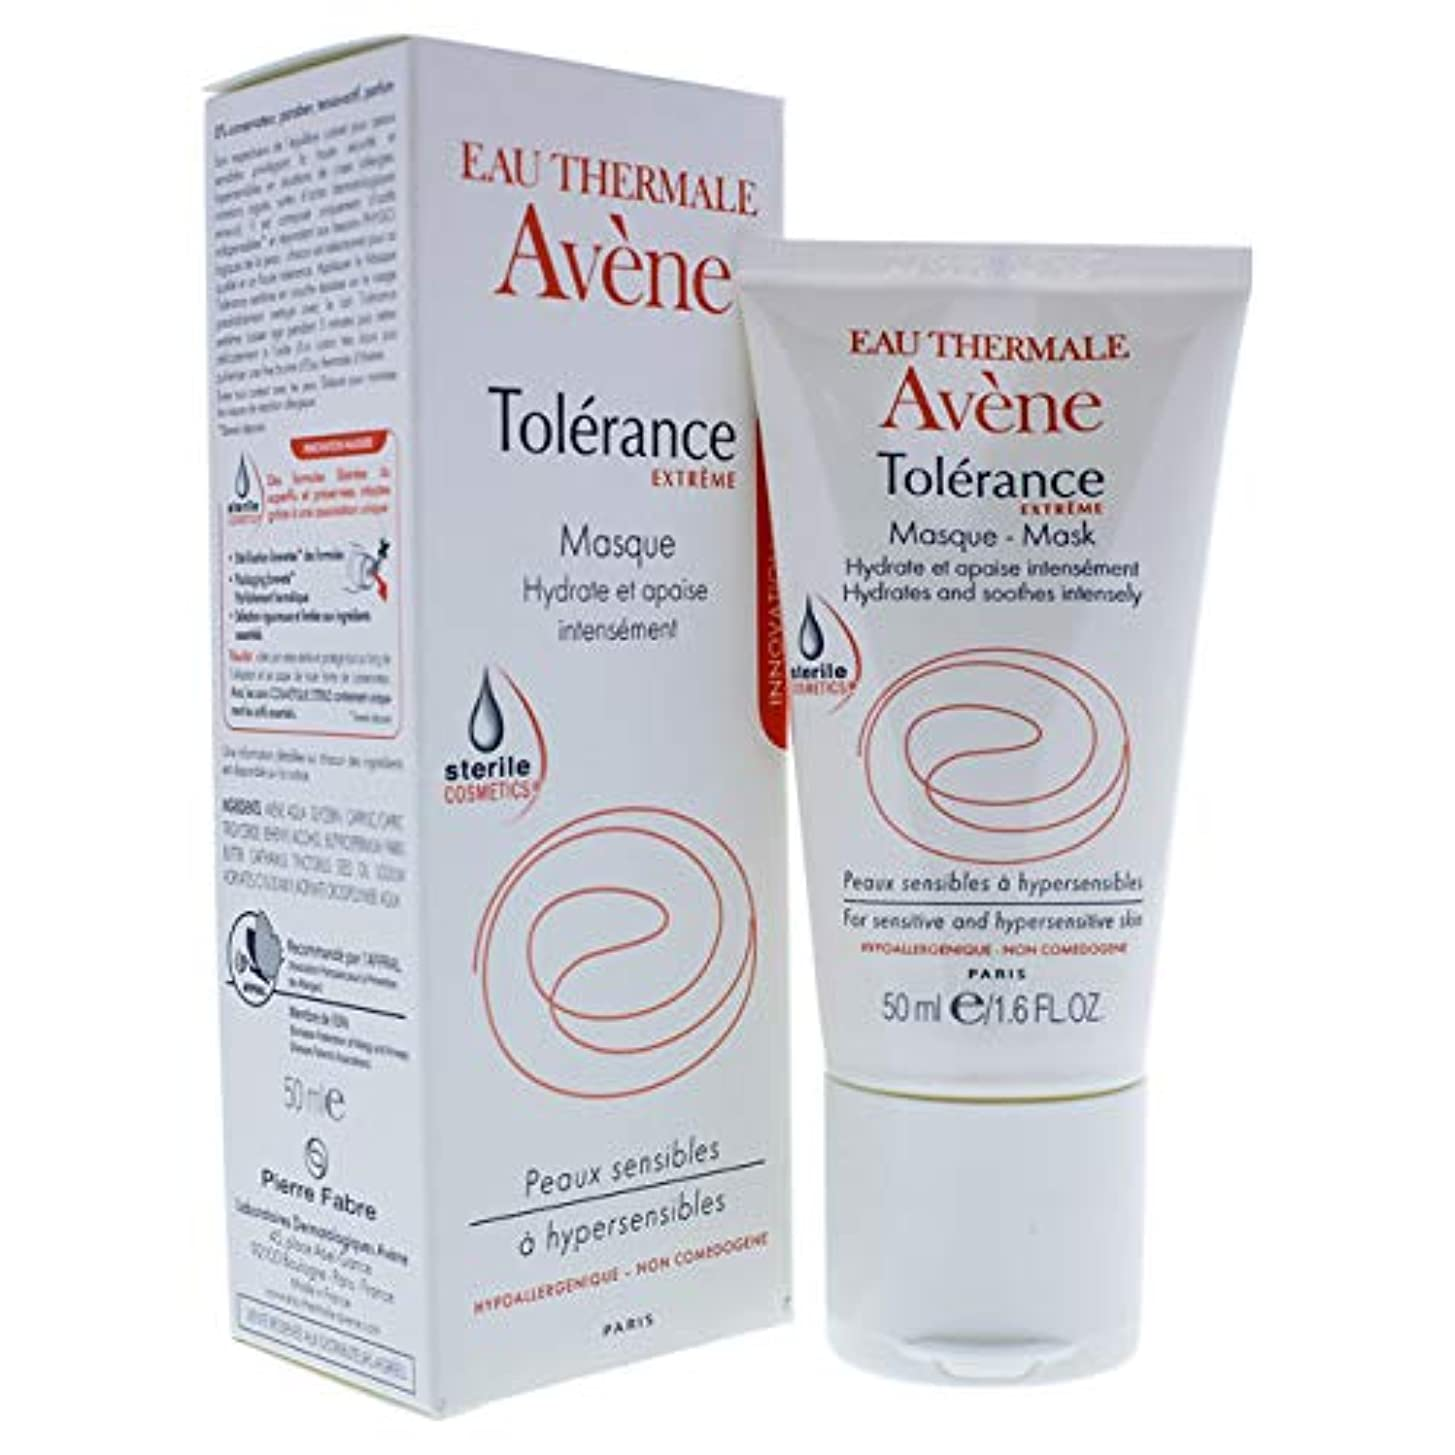 アベンヌ Tolerance Extreme Mask - For Sensitive & Hypersensitive Skin 50ml/1.6oz並行輸入品